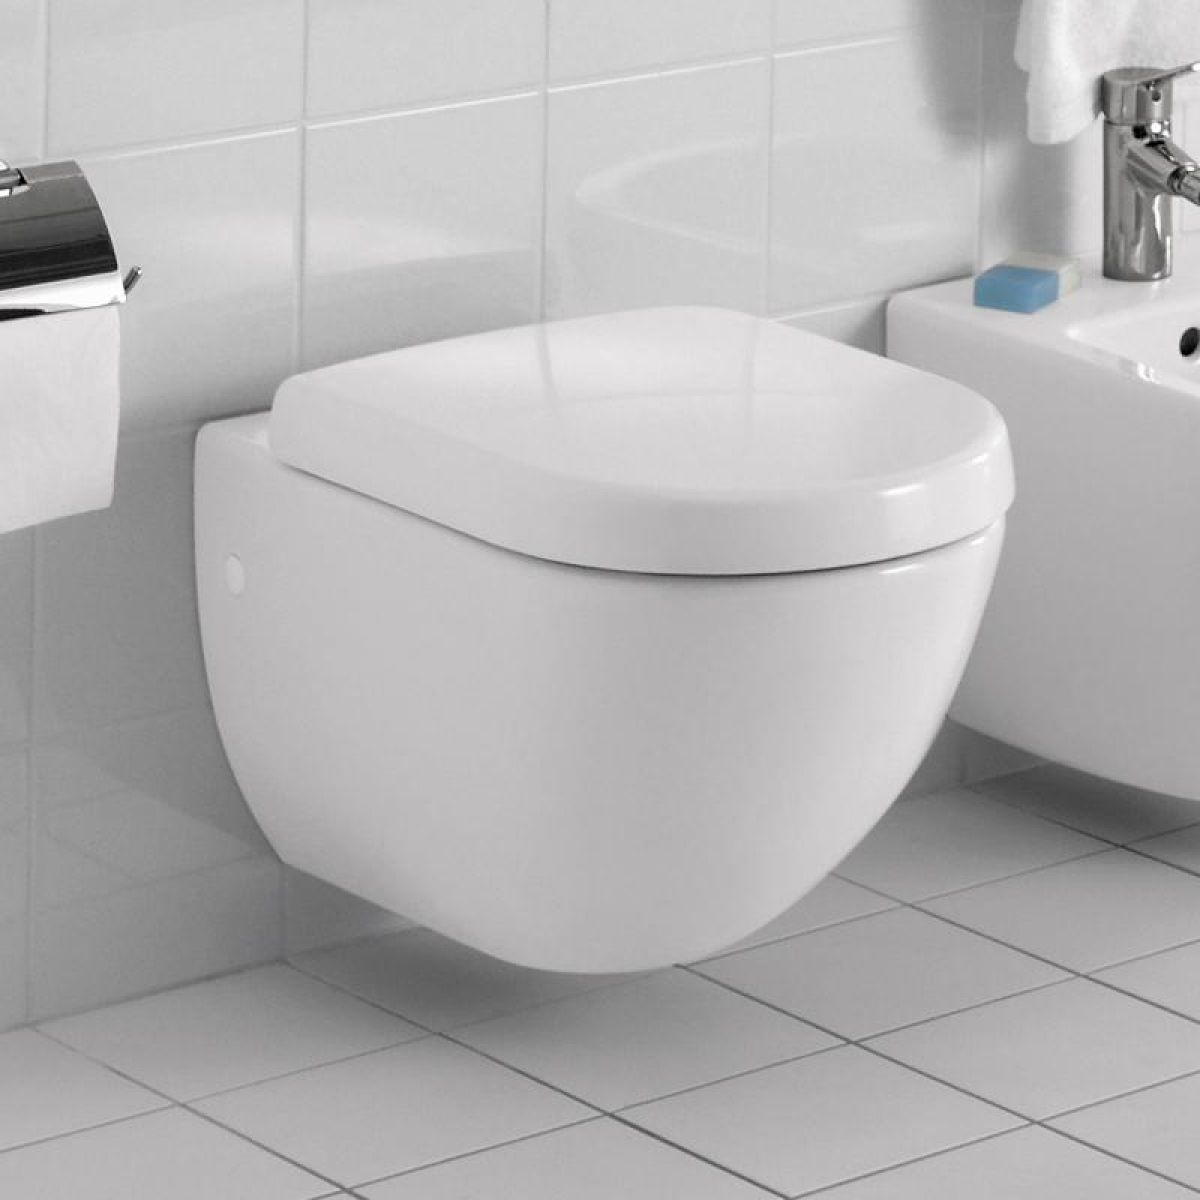 villeroy boch subway soho wall hung toilet bathrooms direct yorkshire. Black Bedroom Furniture Sets. Home Design Ideas